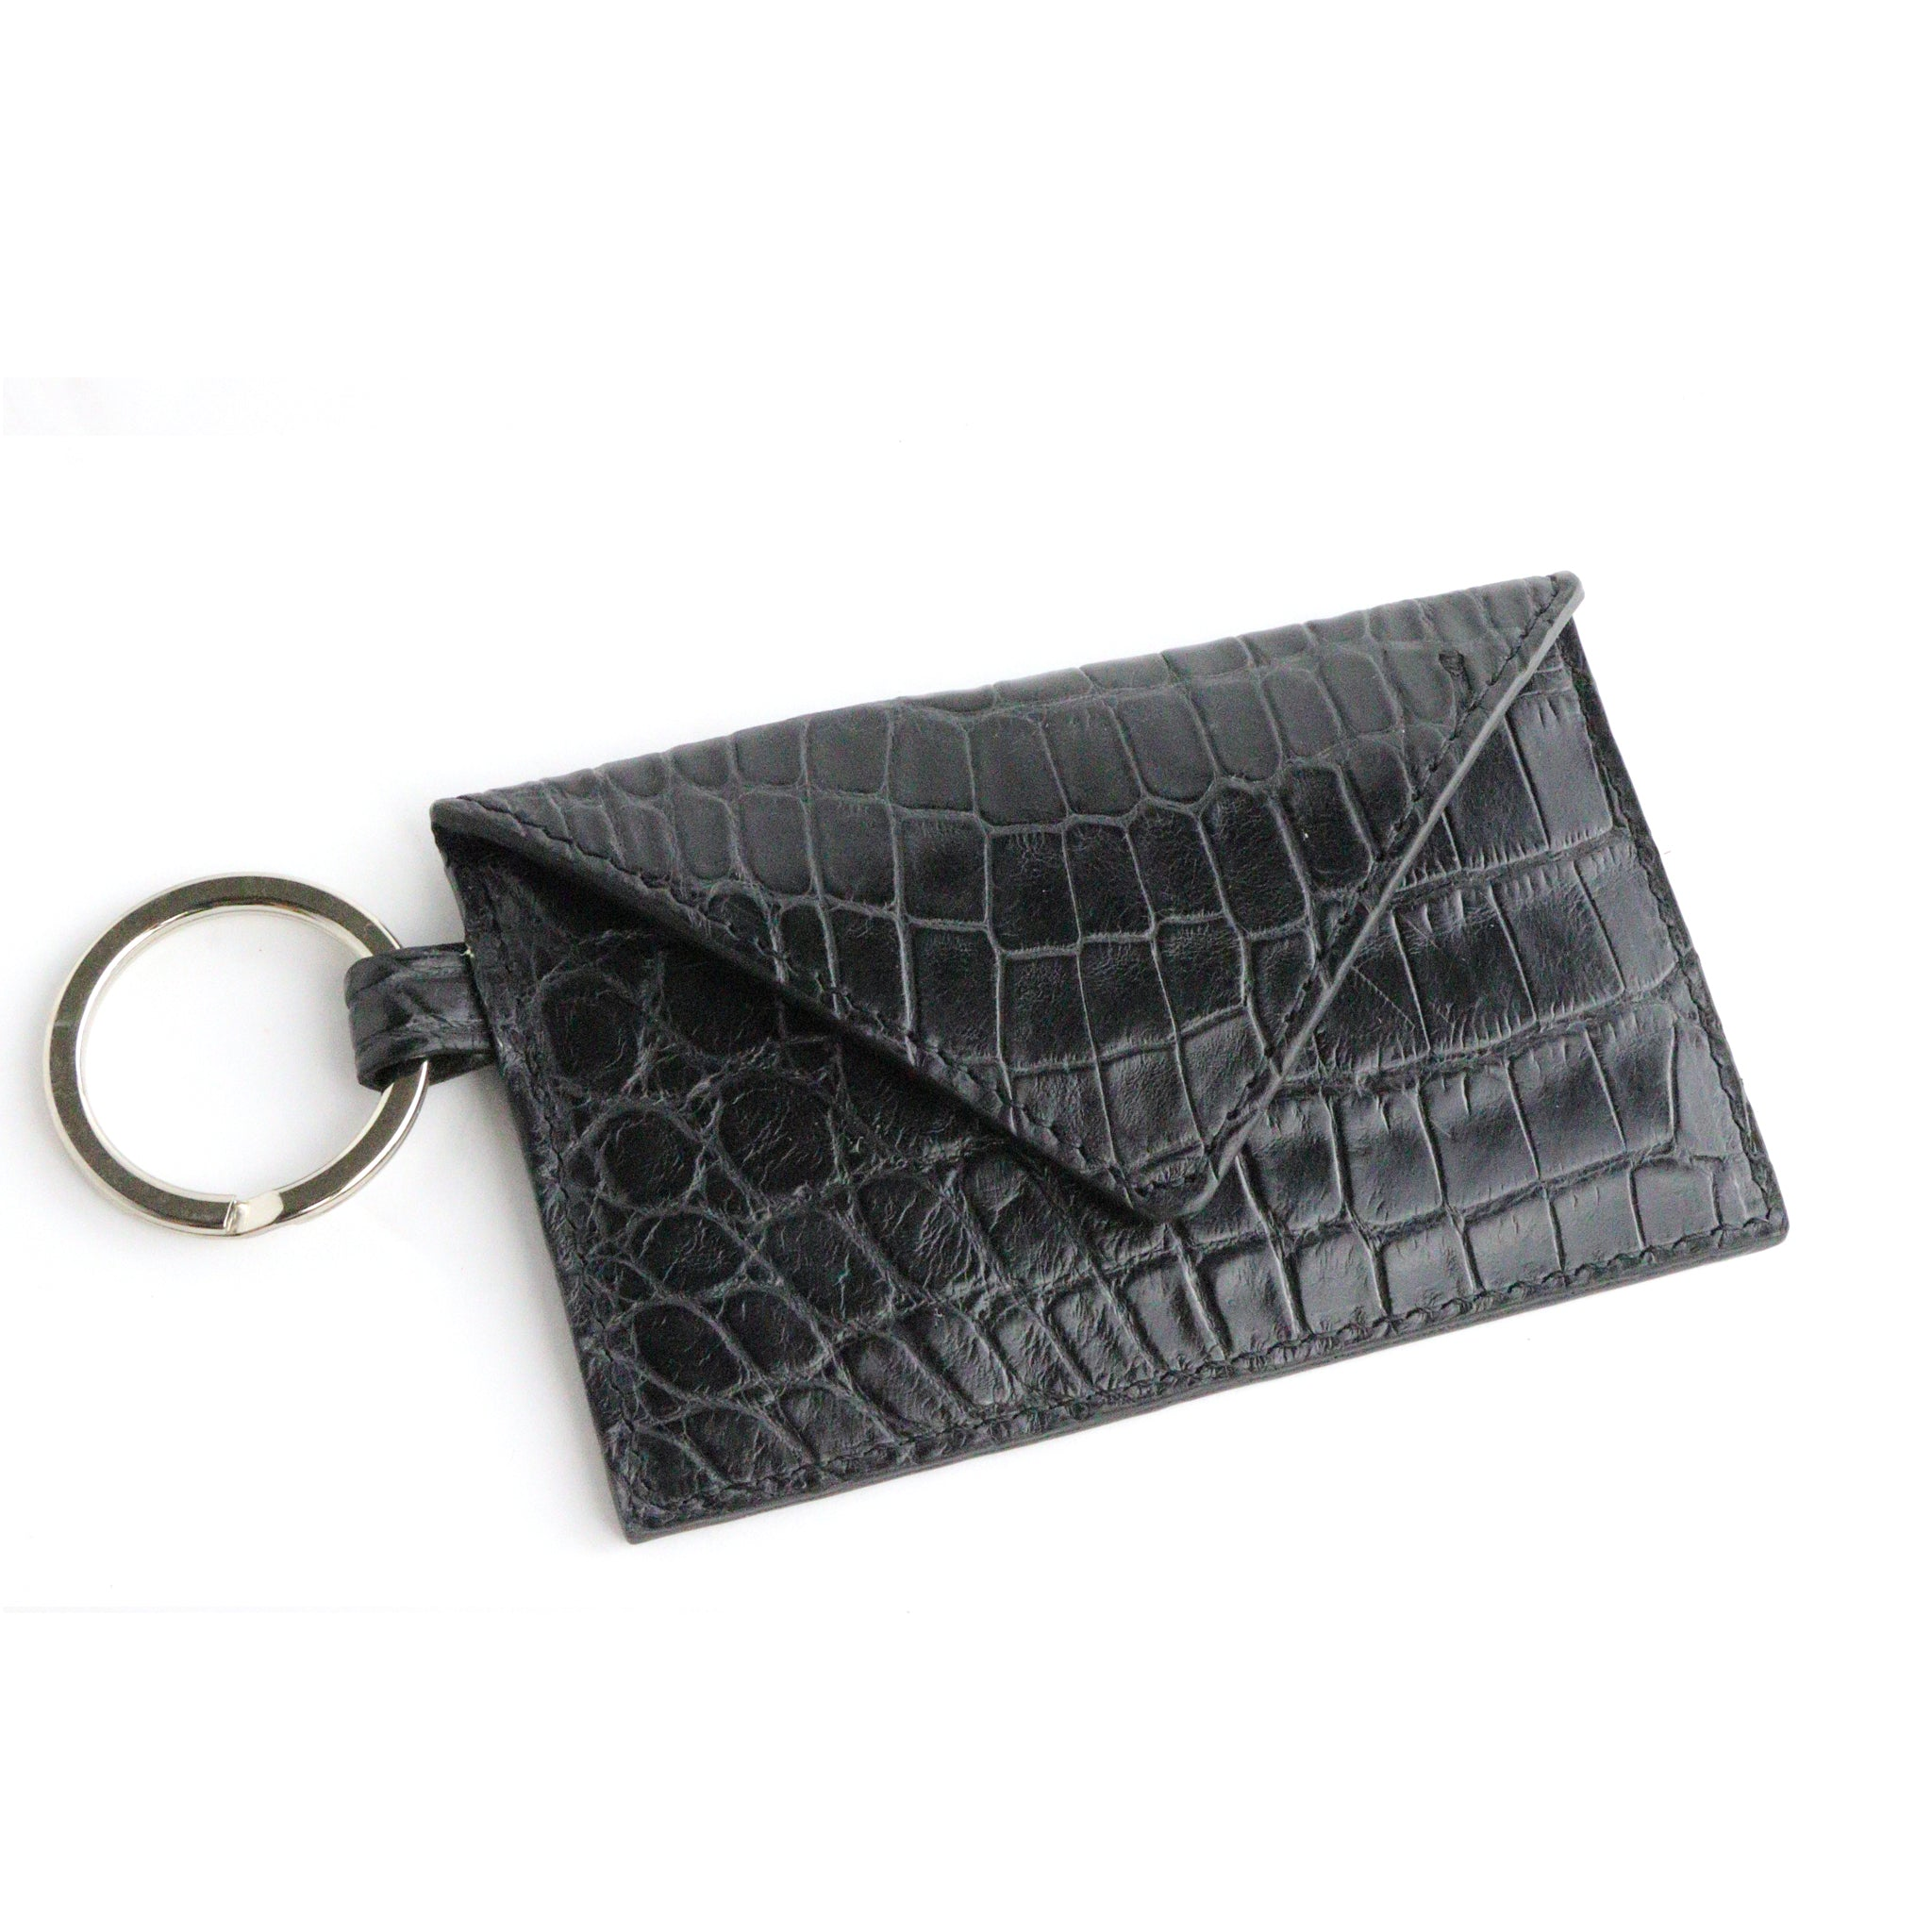 Alligator Black Key Card Envelope Wallet